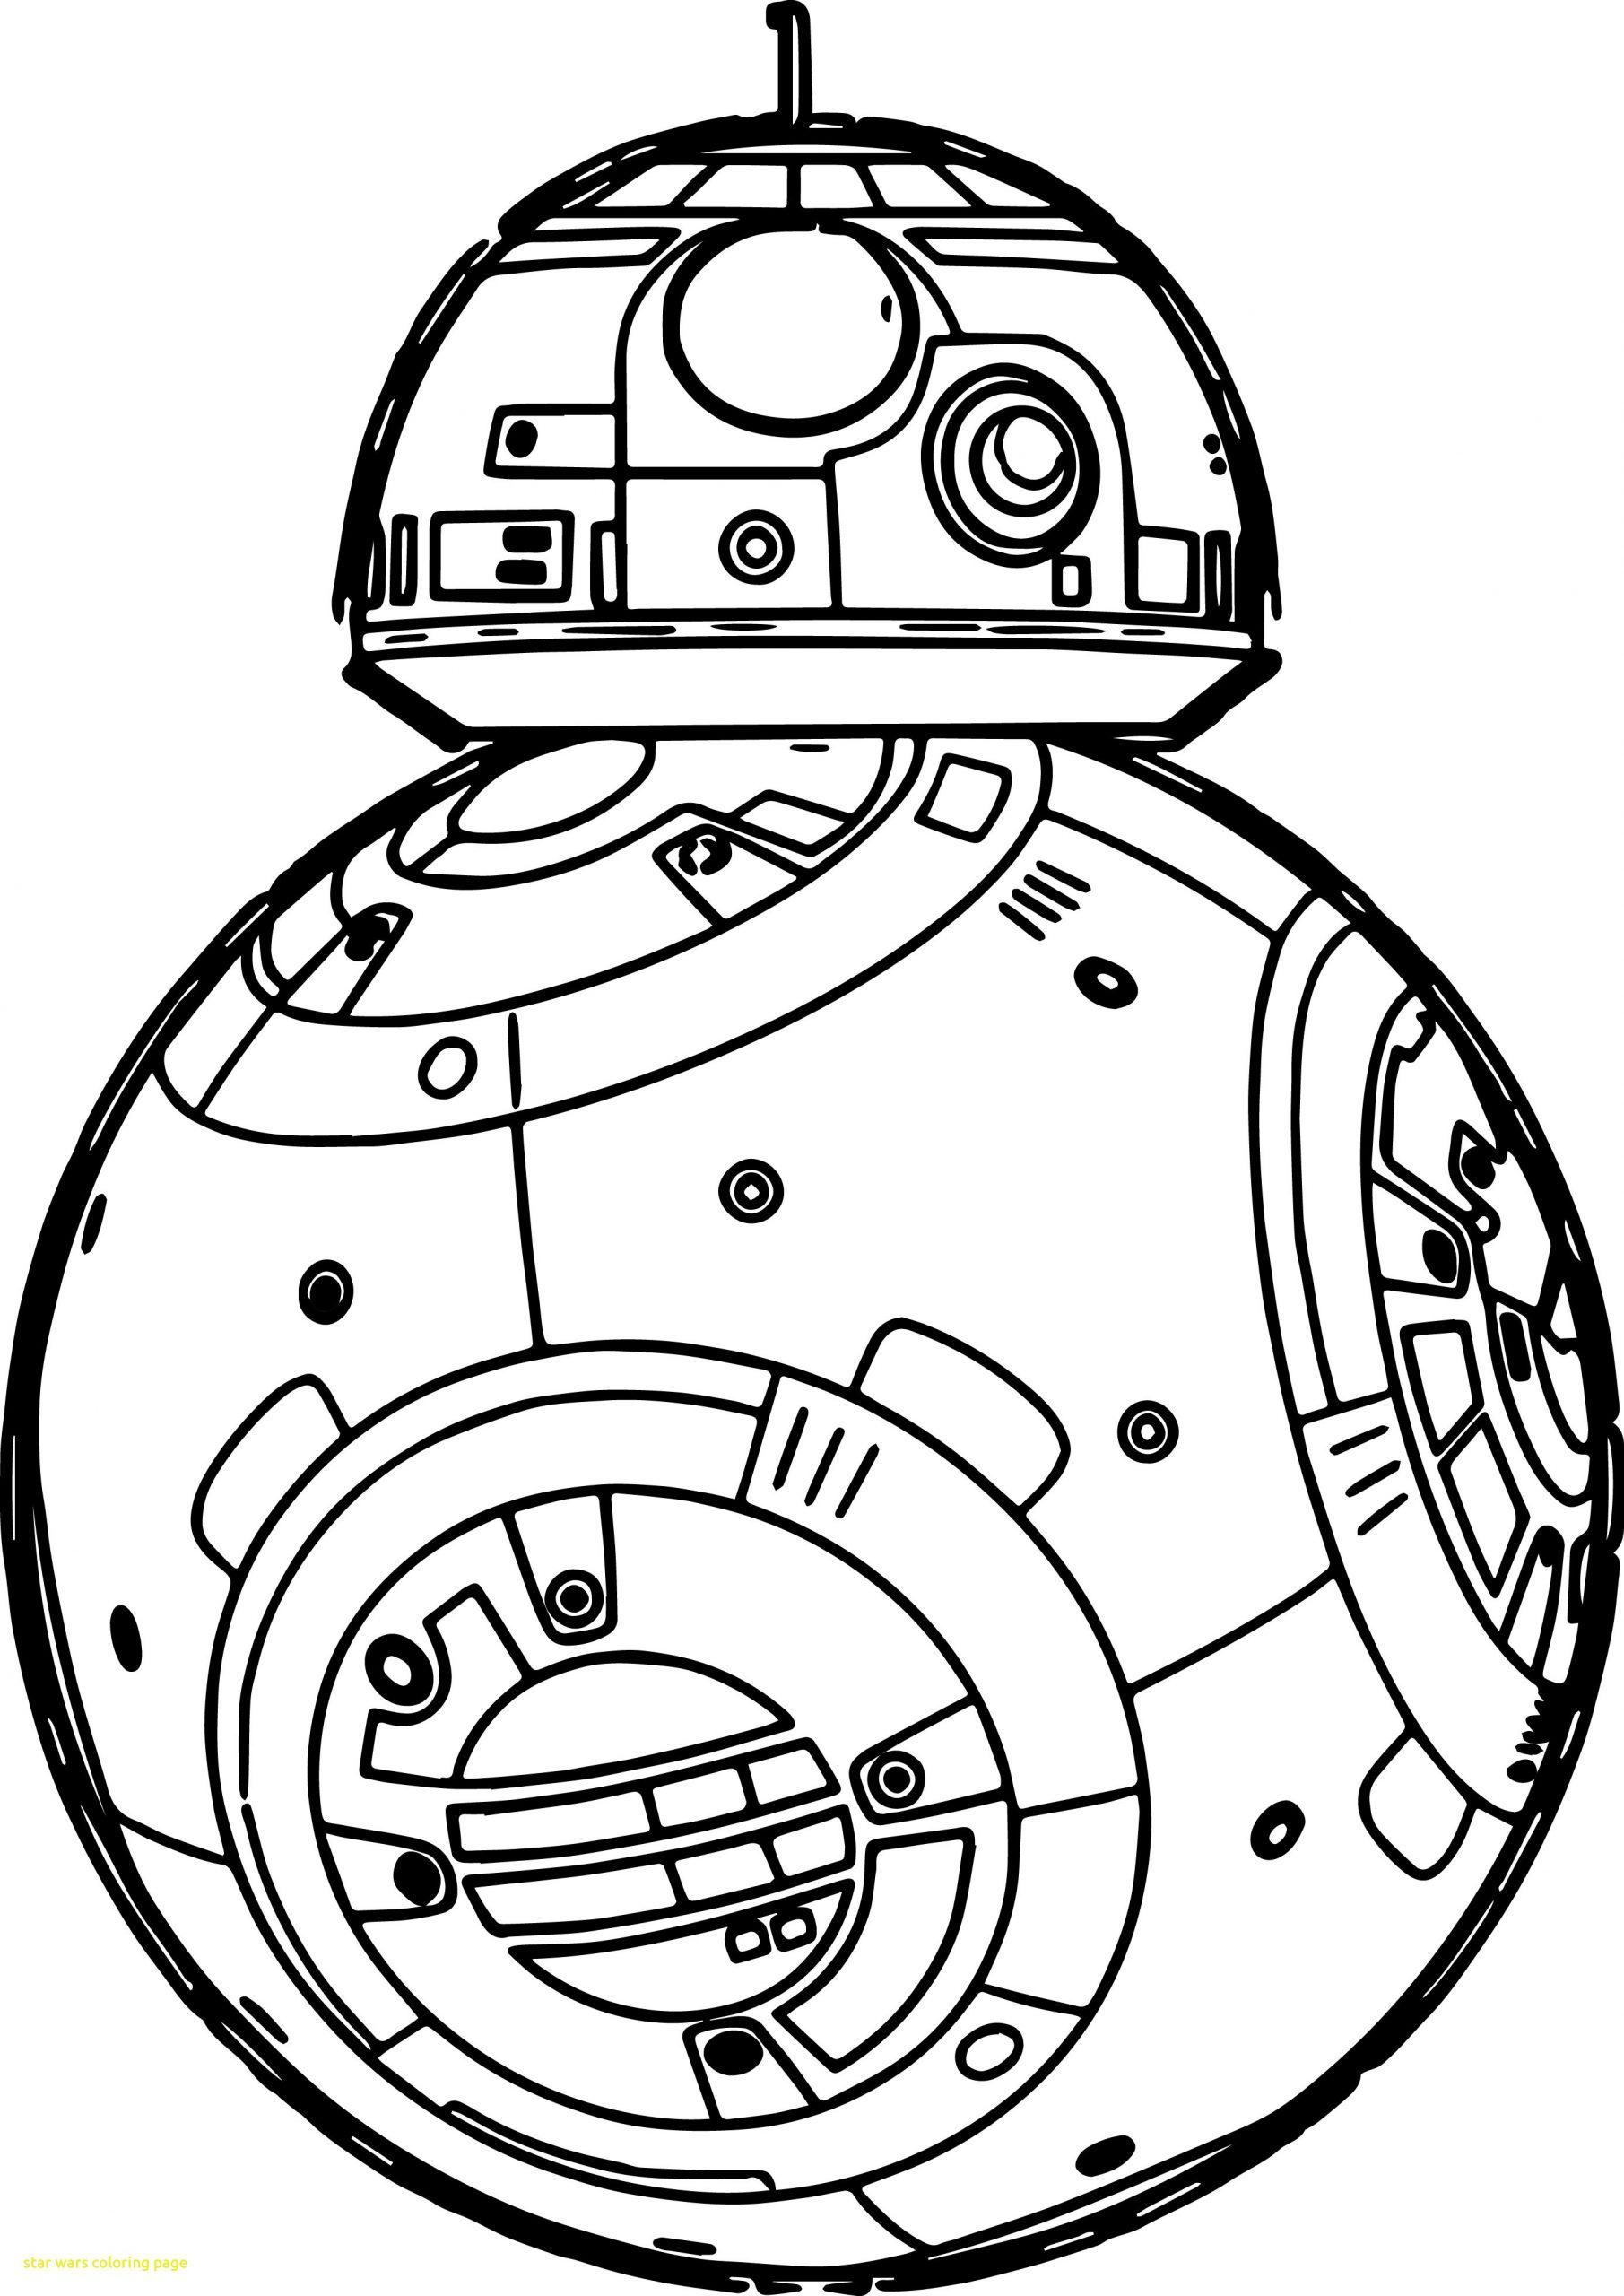 Lego Star Wars Coloring Sheets Printable Free Pages To Print R2d2 –  Dialogueeurope